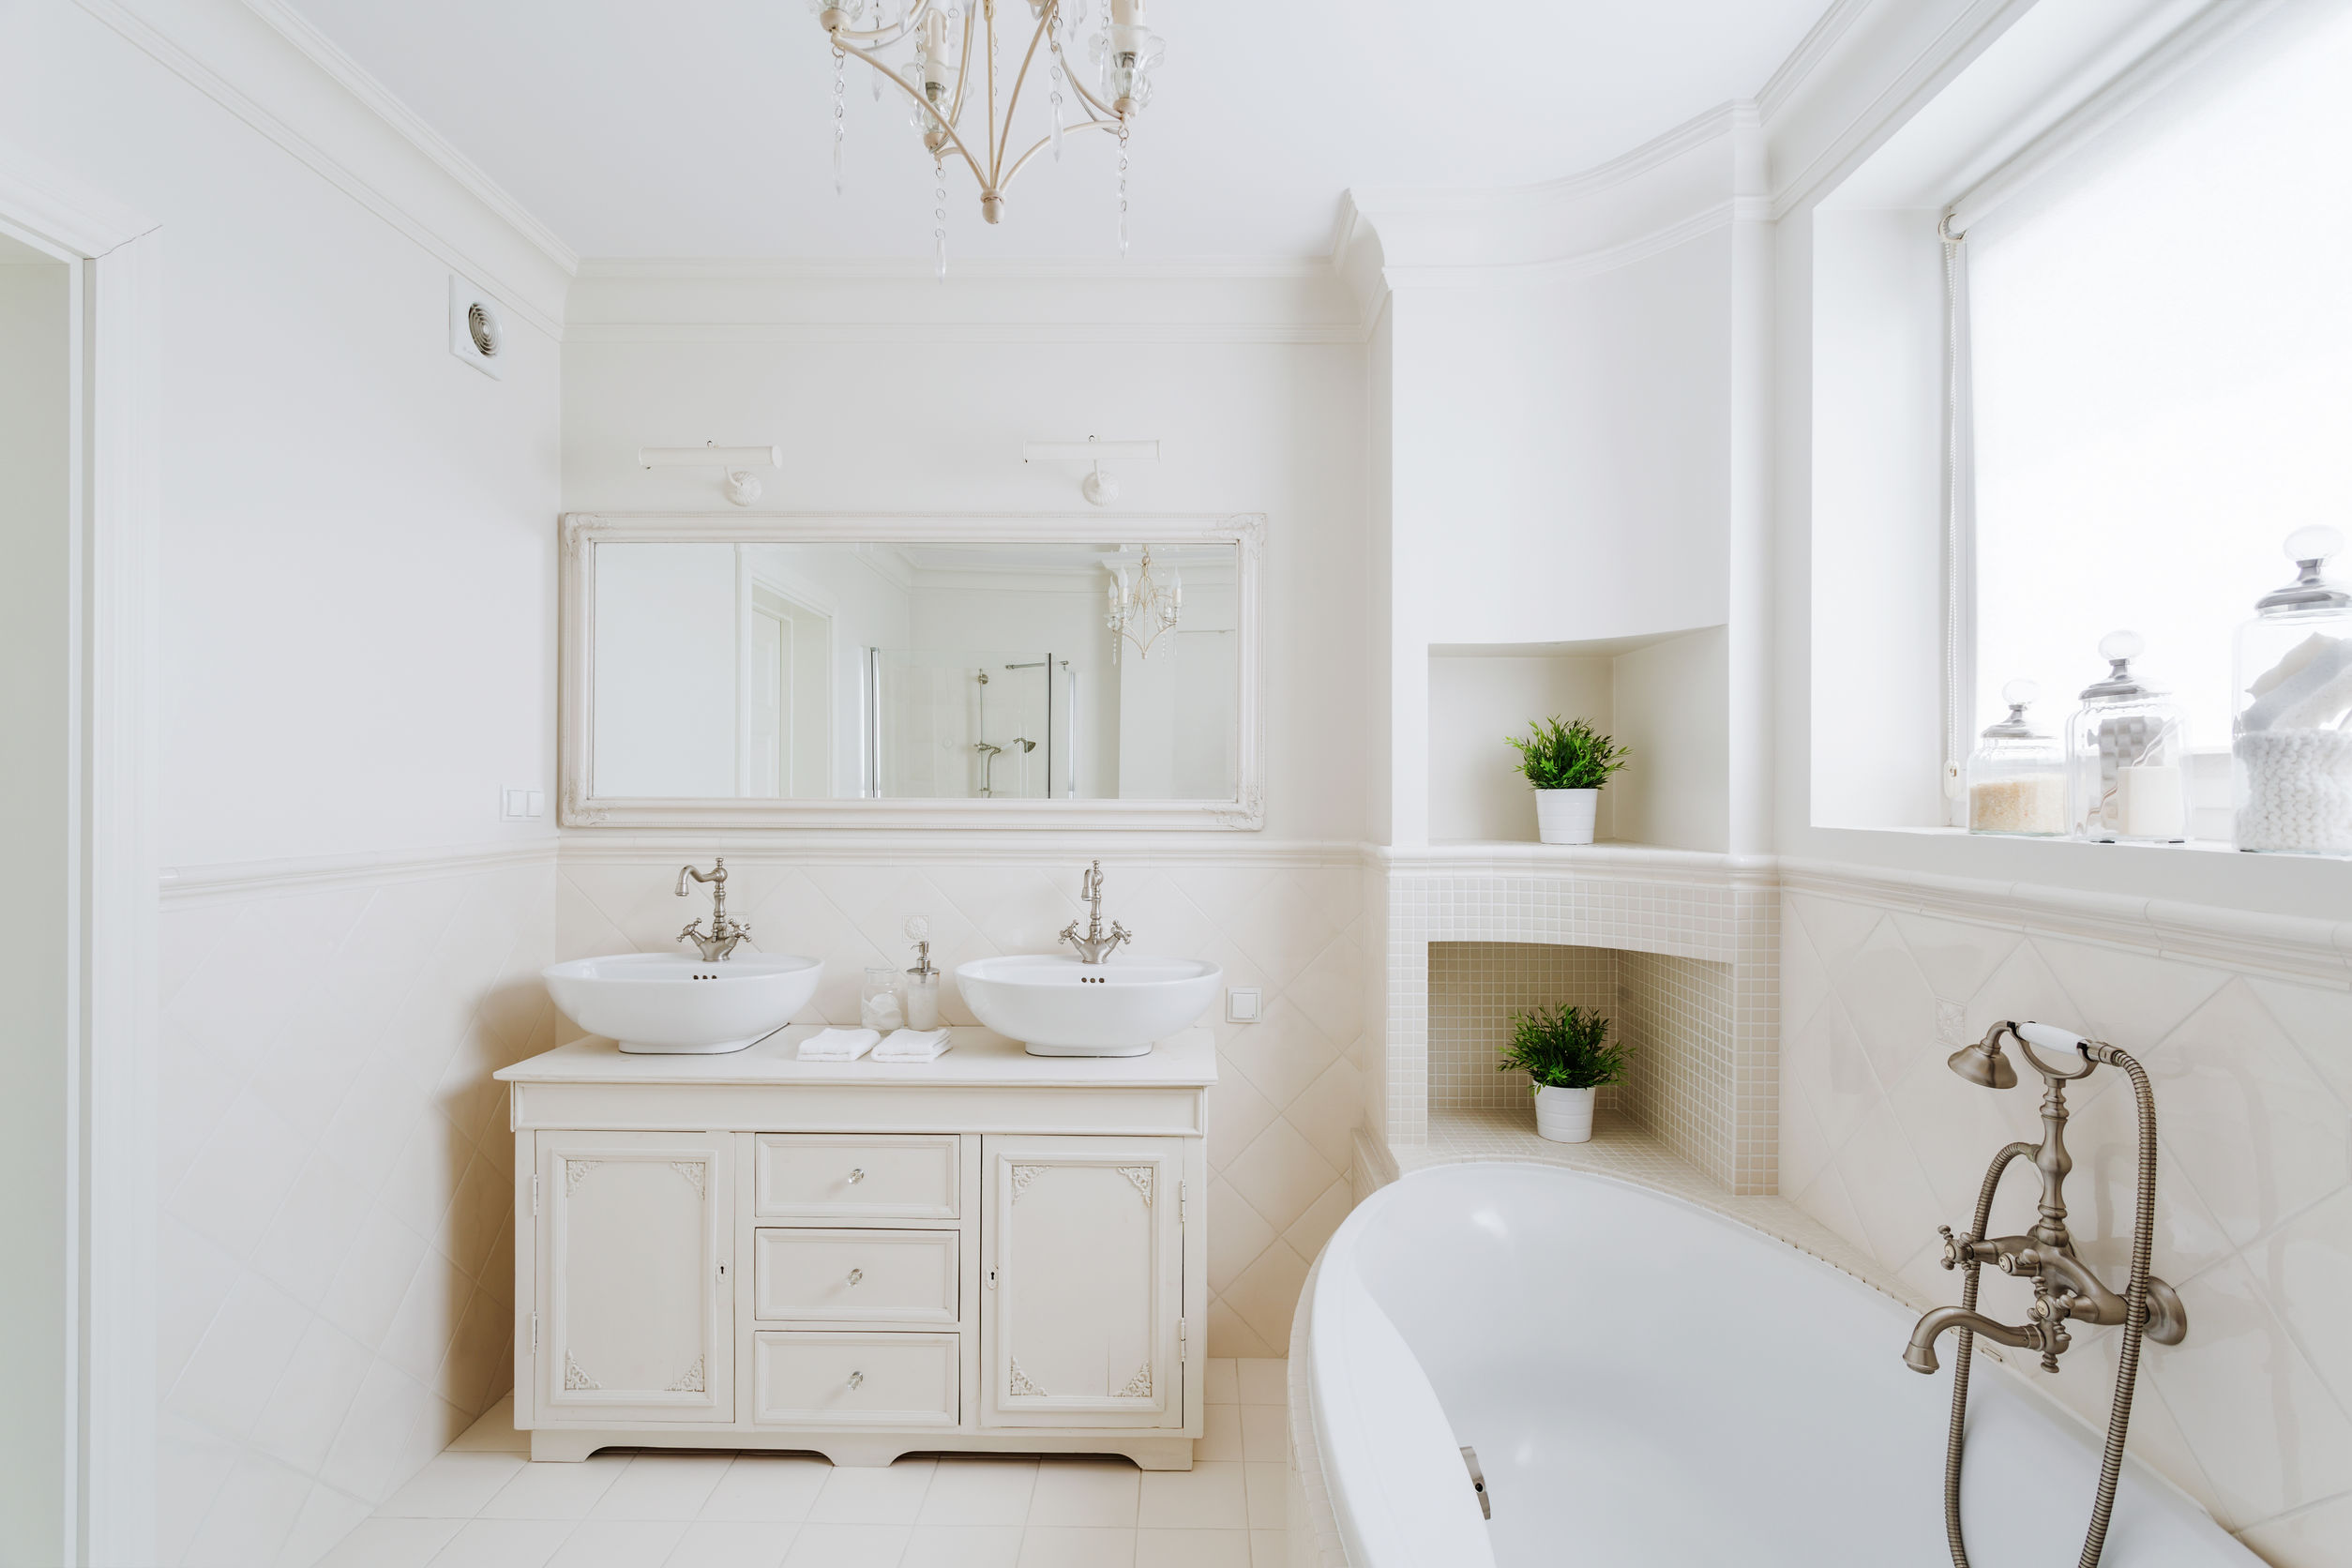 Bathroom trends to stay away from – an all white bathroom